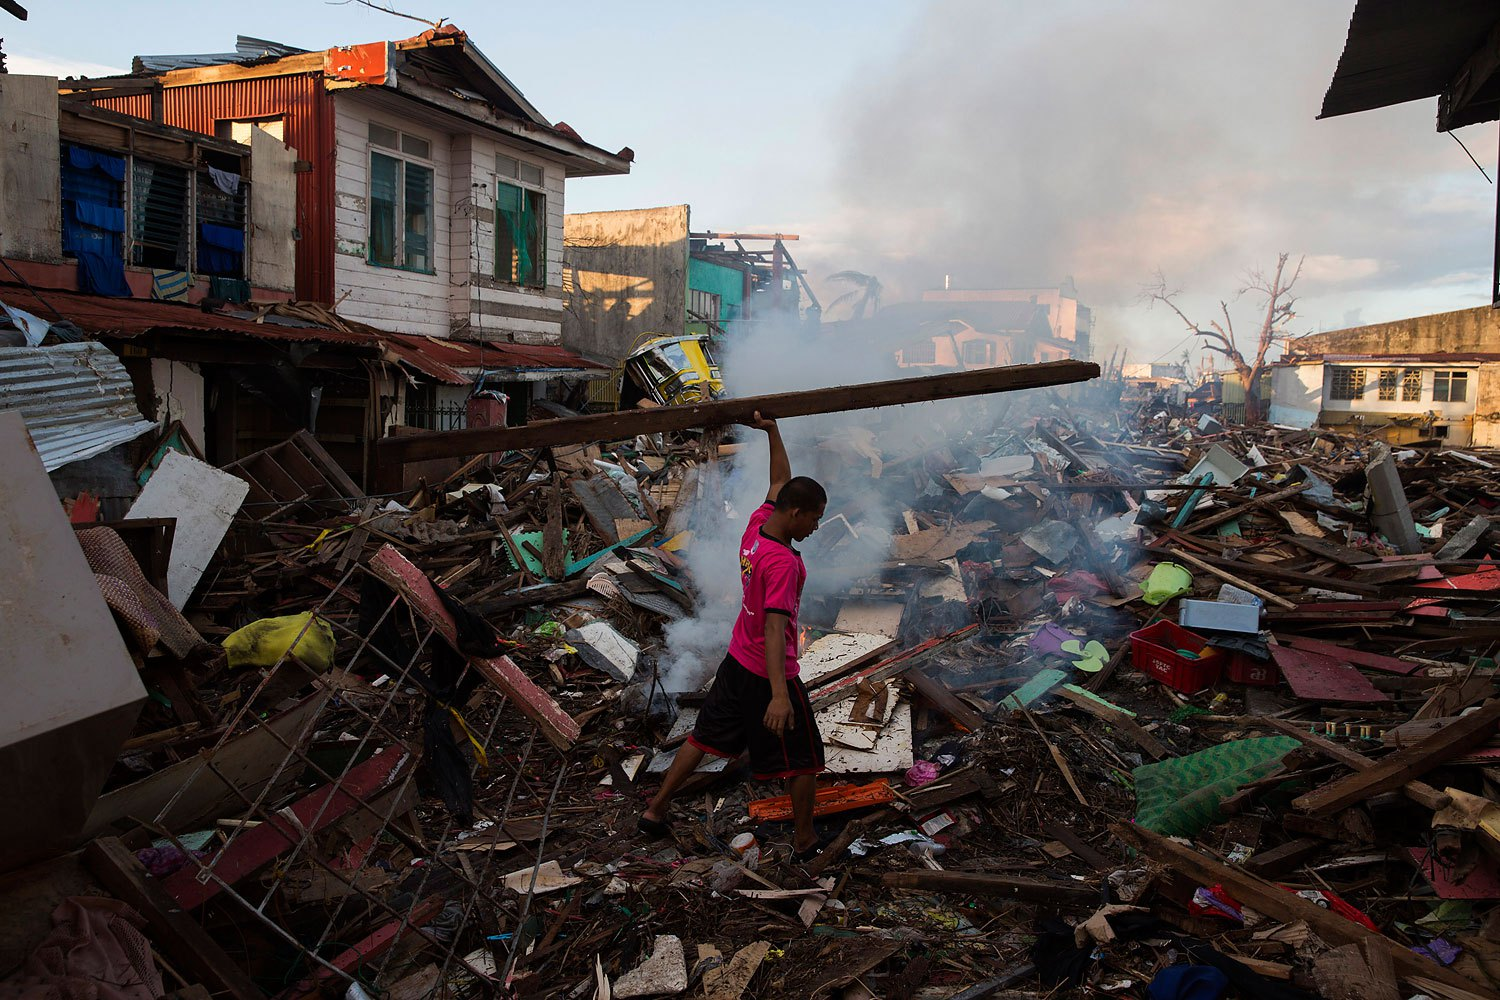 A man salvages wood in a neighbourhood destroyed by Typhoon Haiyan in Tacloban, Philippines on November 17, 2013.